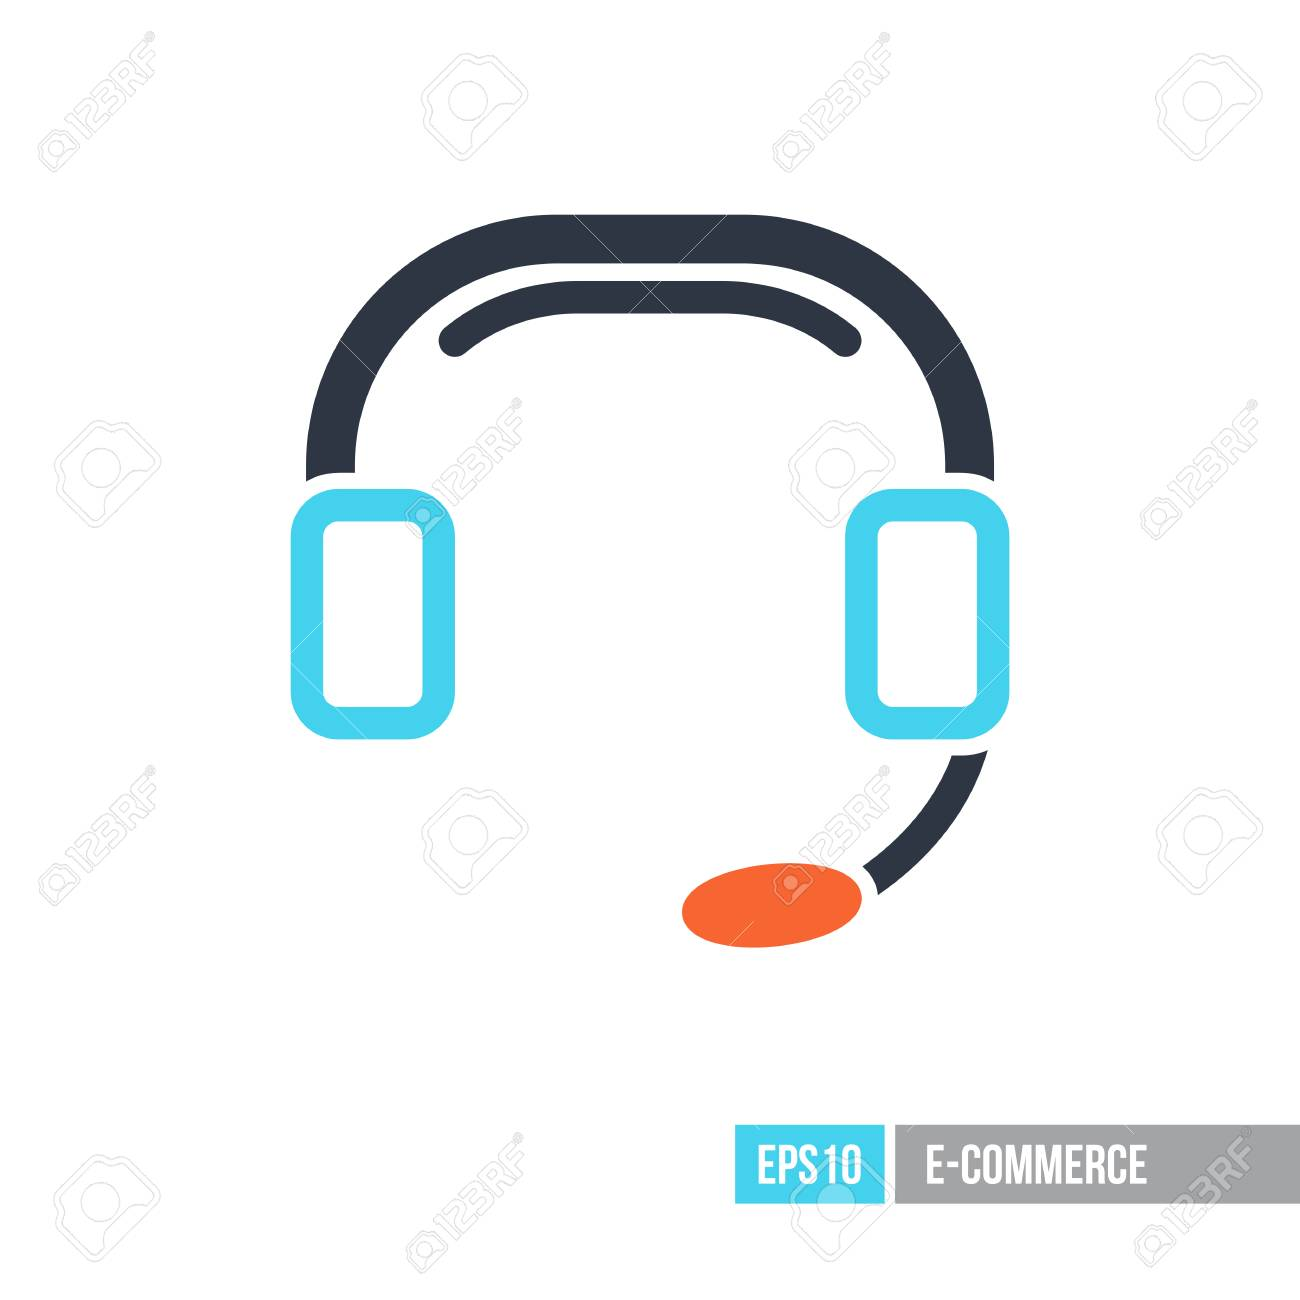 call center icon support e commerce sign graph symbol for royalty free cliparts vectors and stock illustration image 94602007 call center icon support e commerce sign graph symbol for